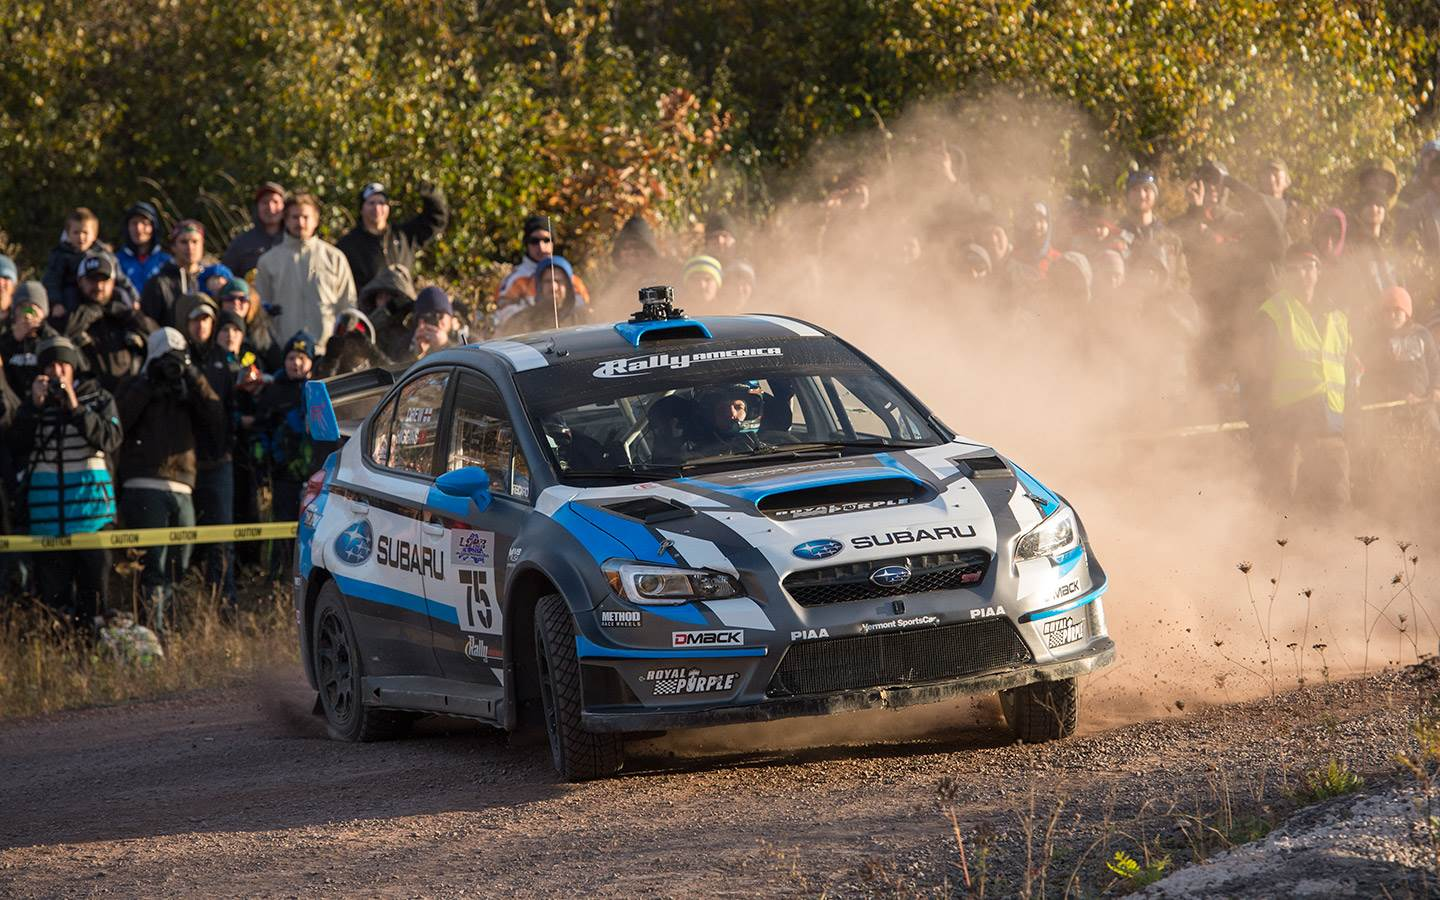 Royal Purple Sponsored Subaru Rally Team Usa Drivers Take First